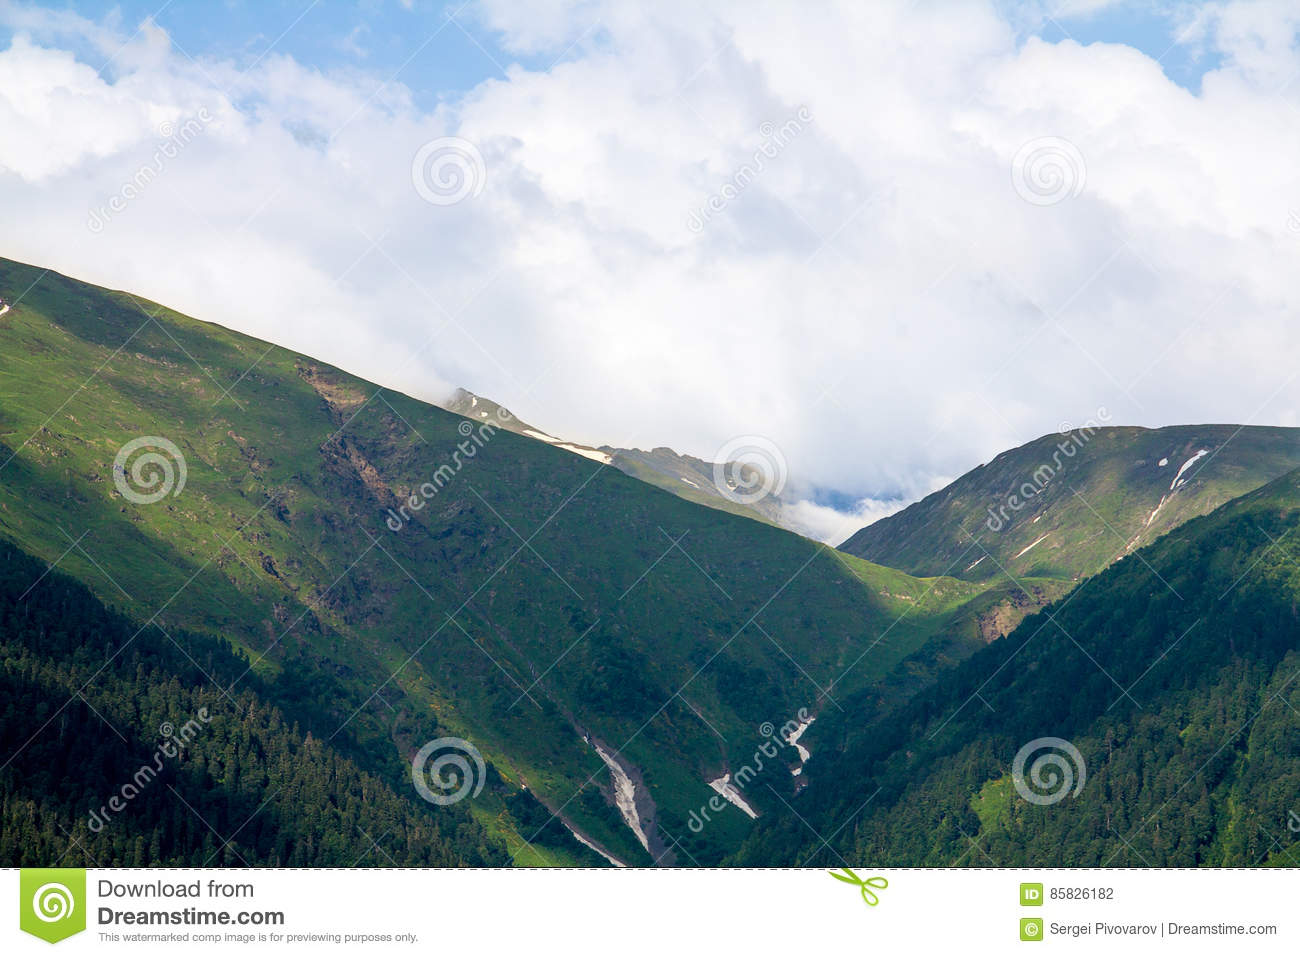 Gorge in the mountains forested with cleft and snow silence and coast